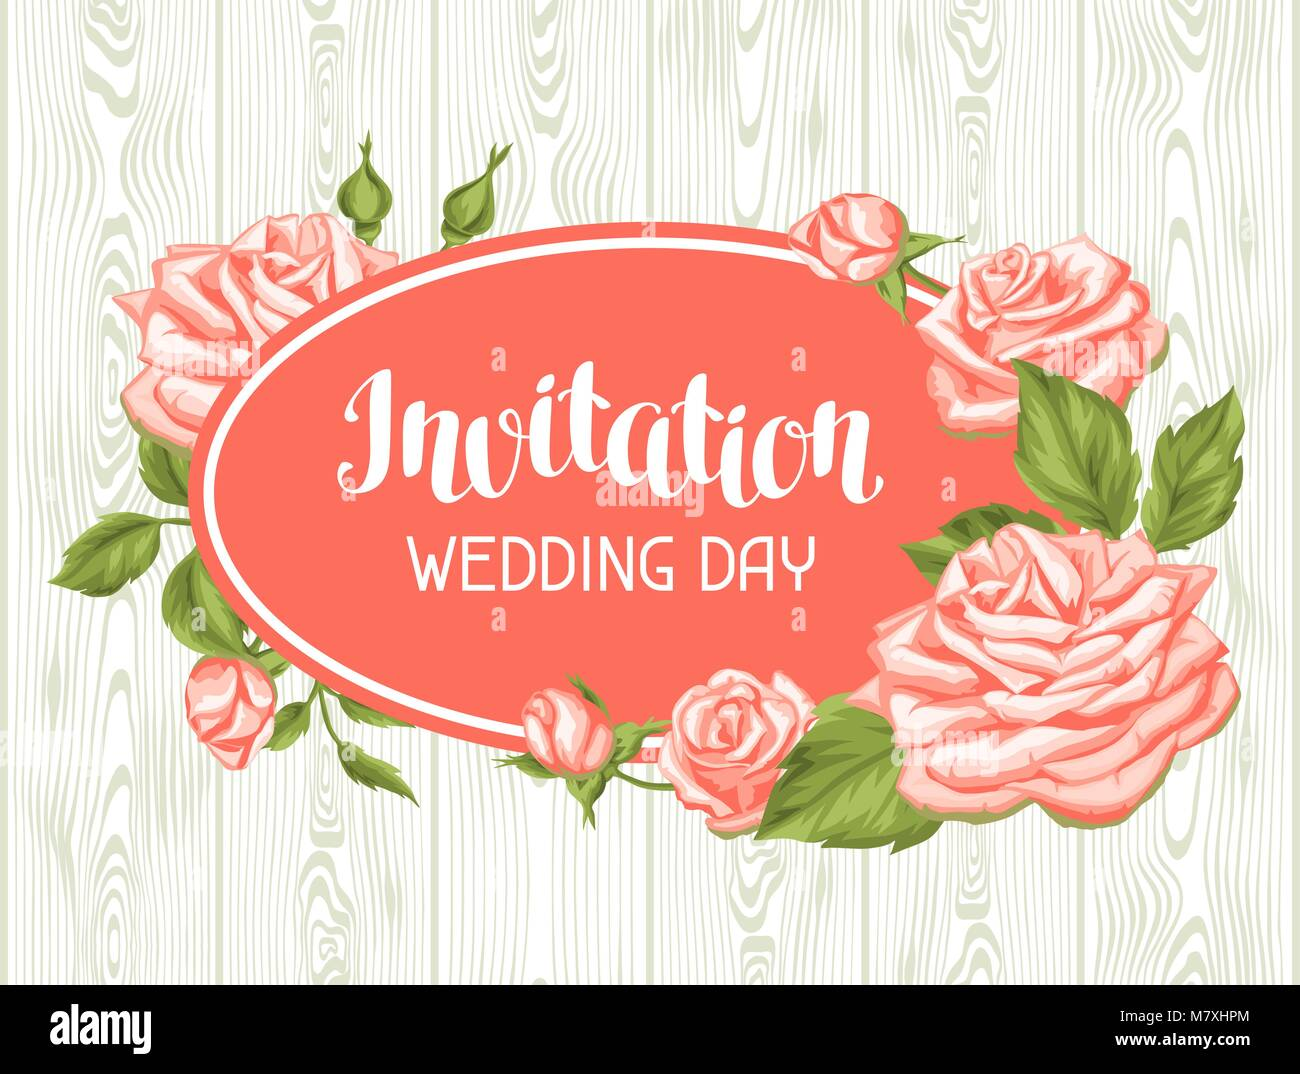 Wedding invitation card template with roses. Calligraphic text and ...